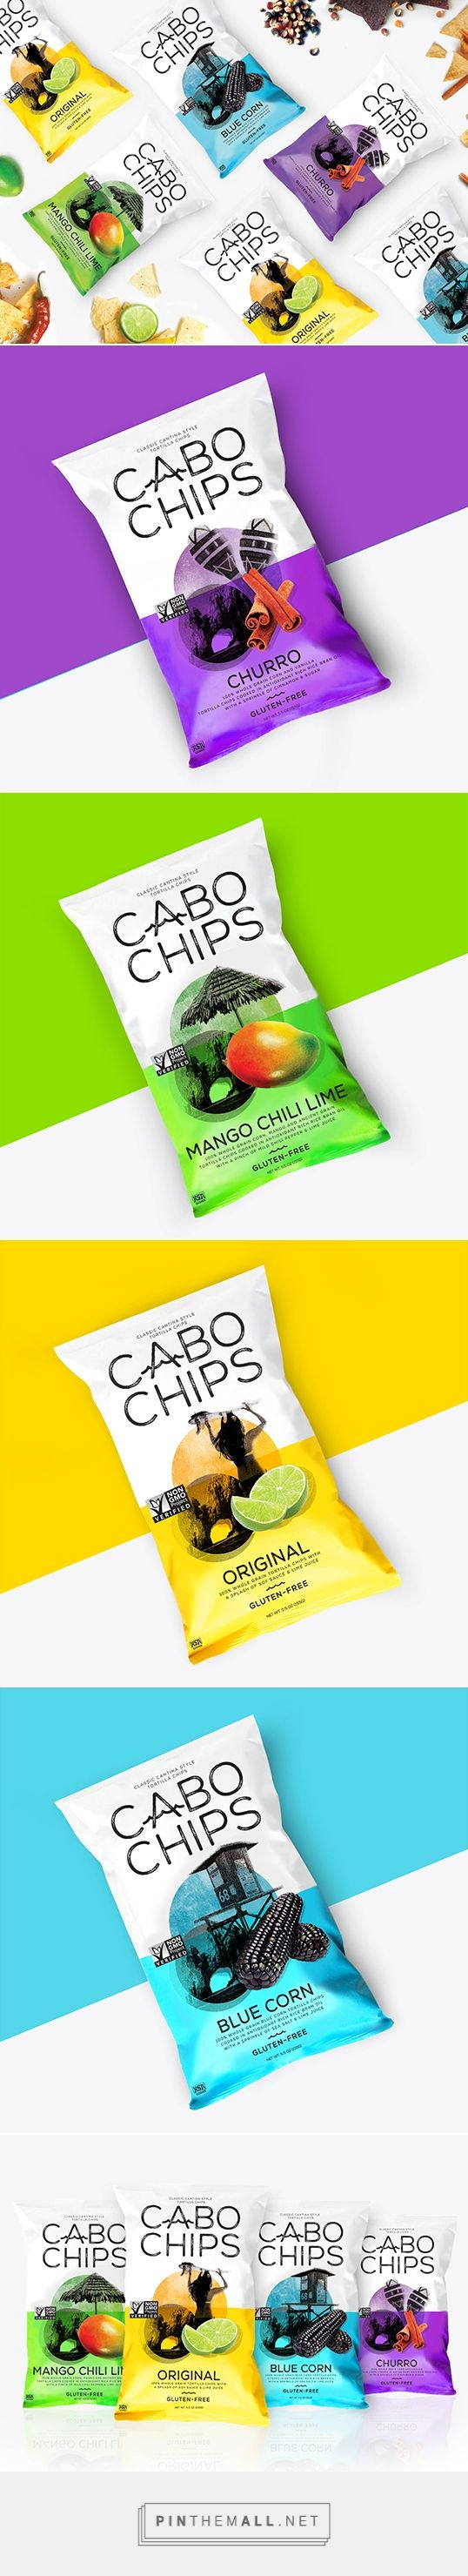 Cabo Chips by Rook. Pin curated by #SFields99 #packaging #design